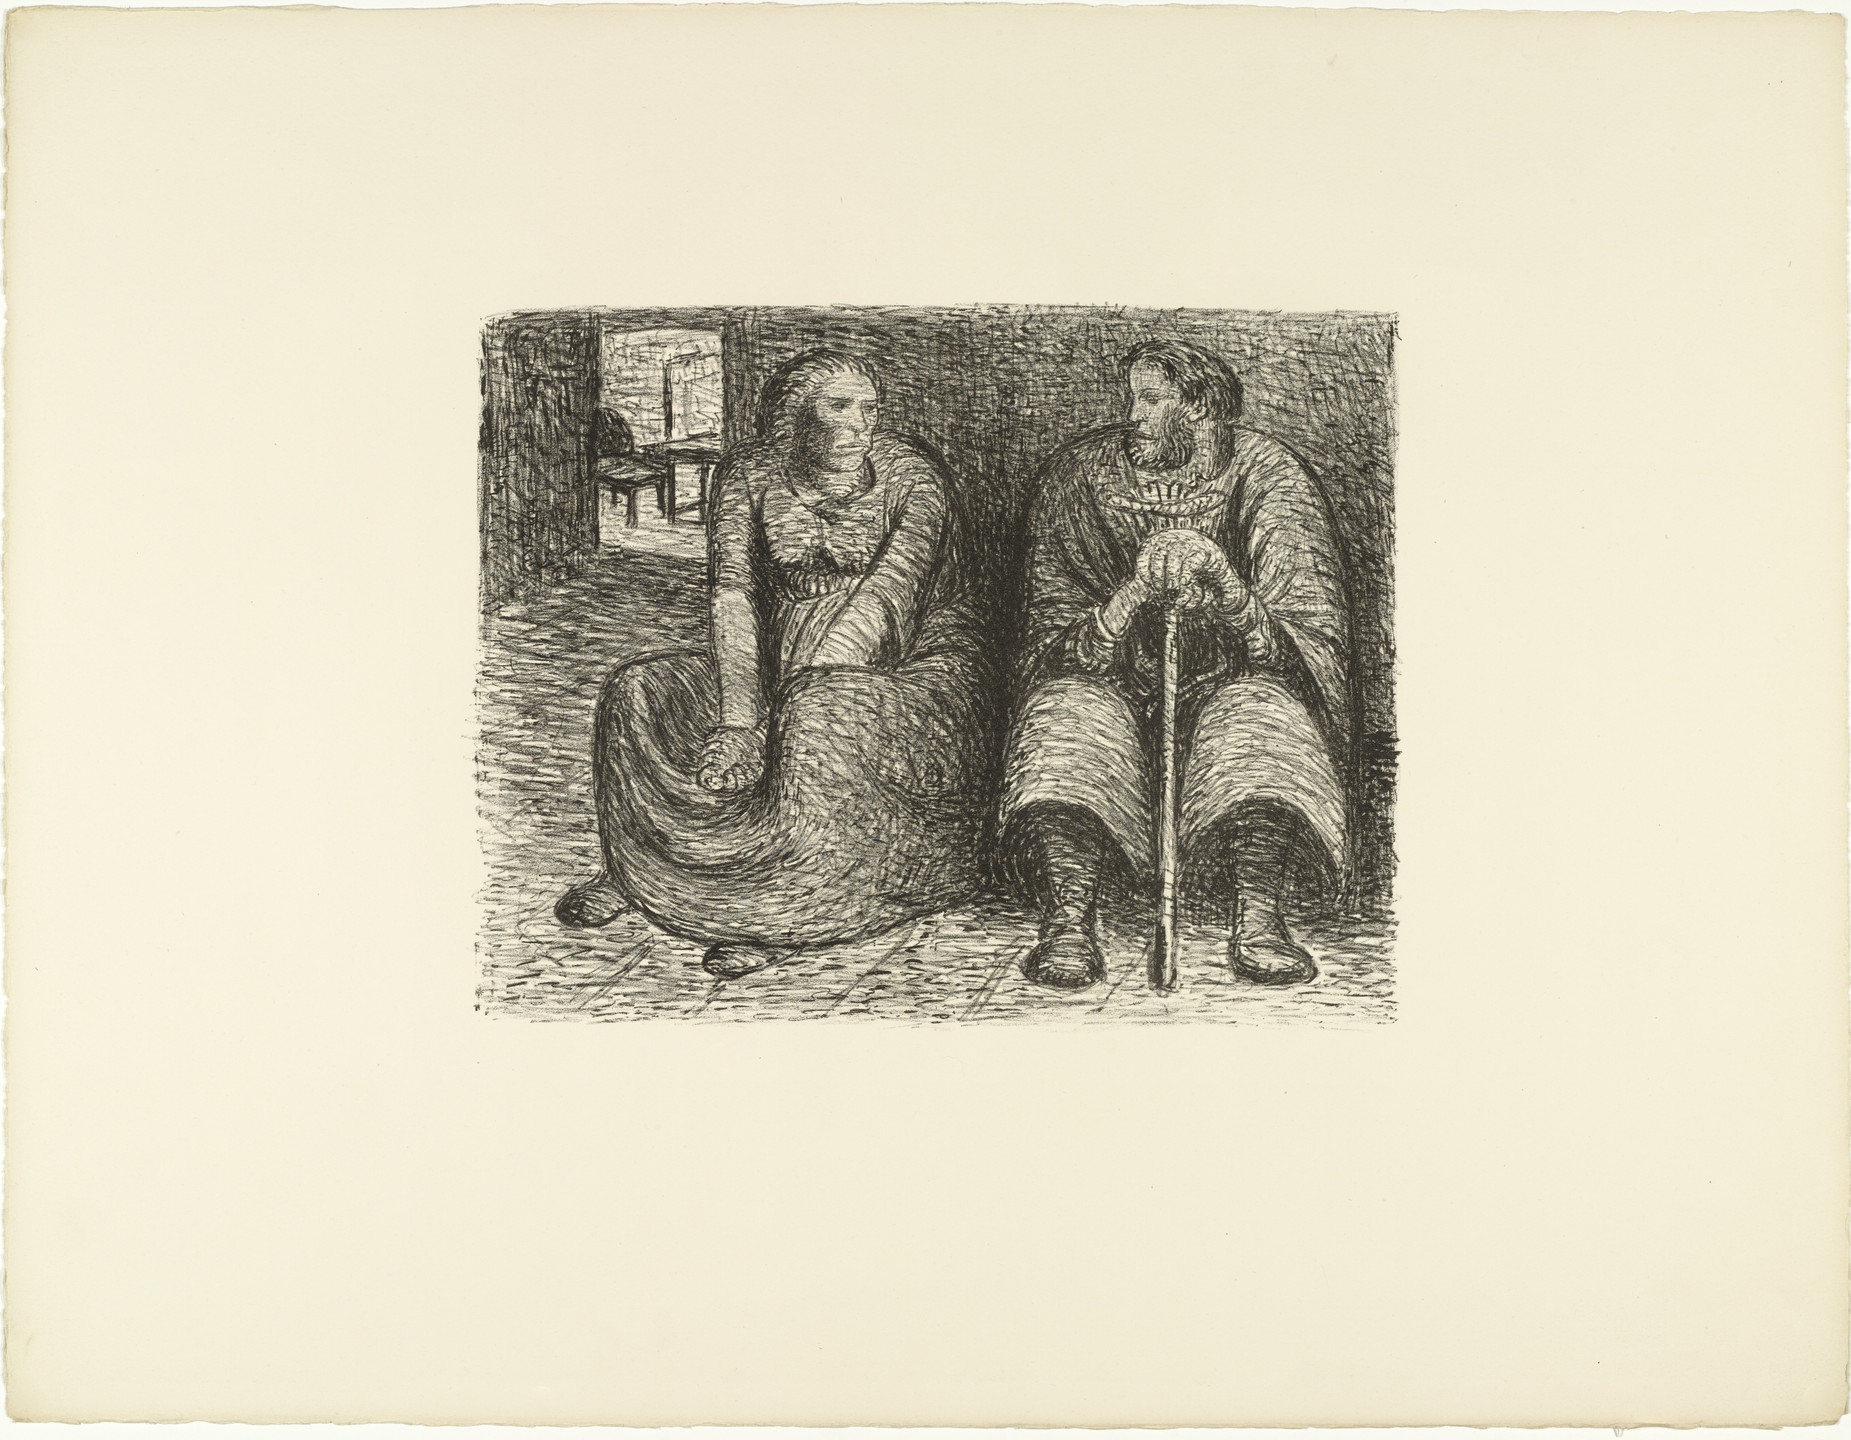 Ernst Barlach. Couple Conversing (Das Paar im Gespräch) from The Dead Day (Der tote Tag). (1910-11, published 1912)